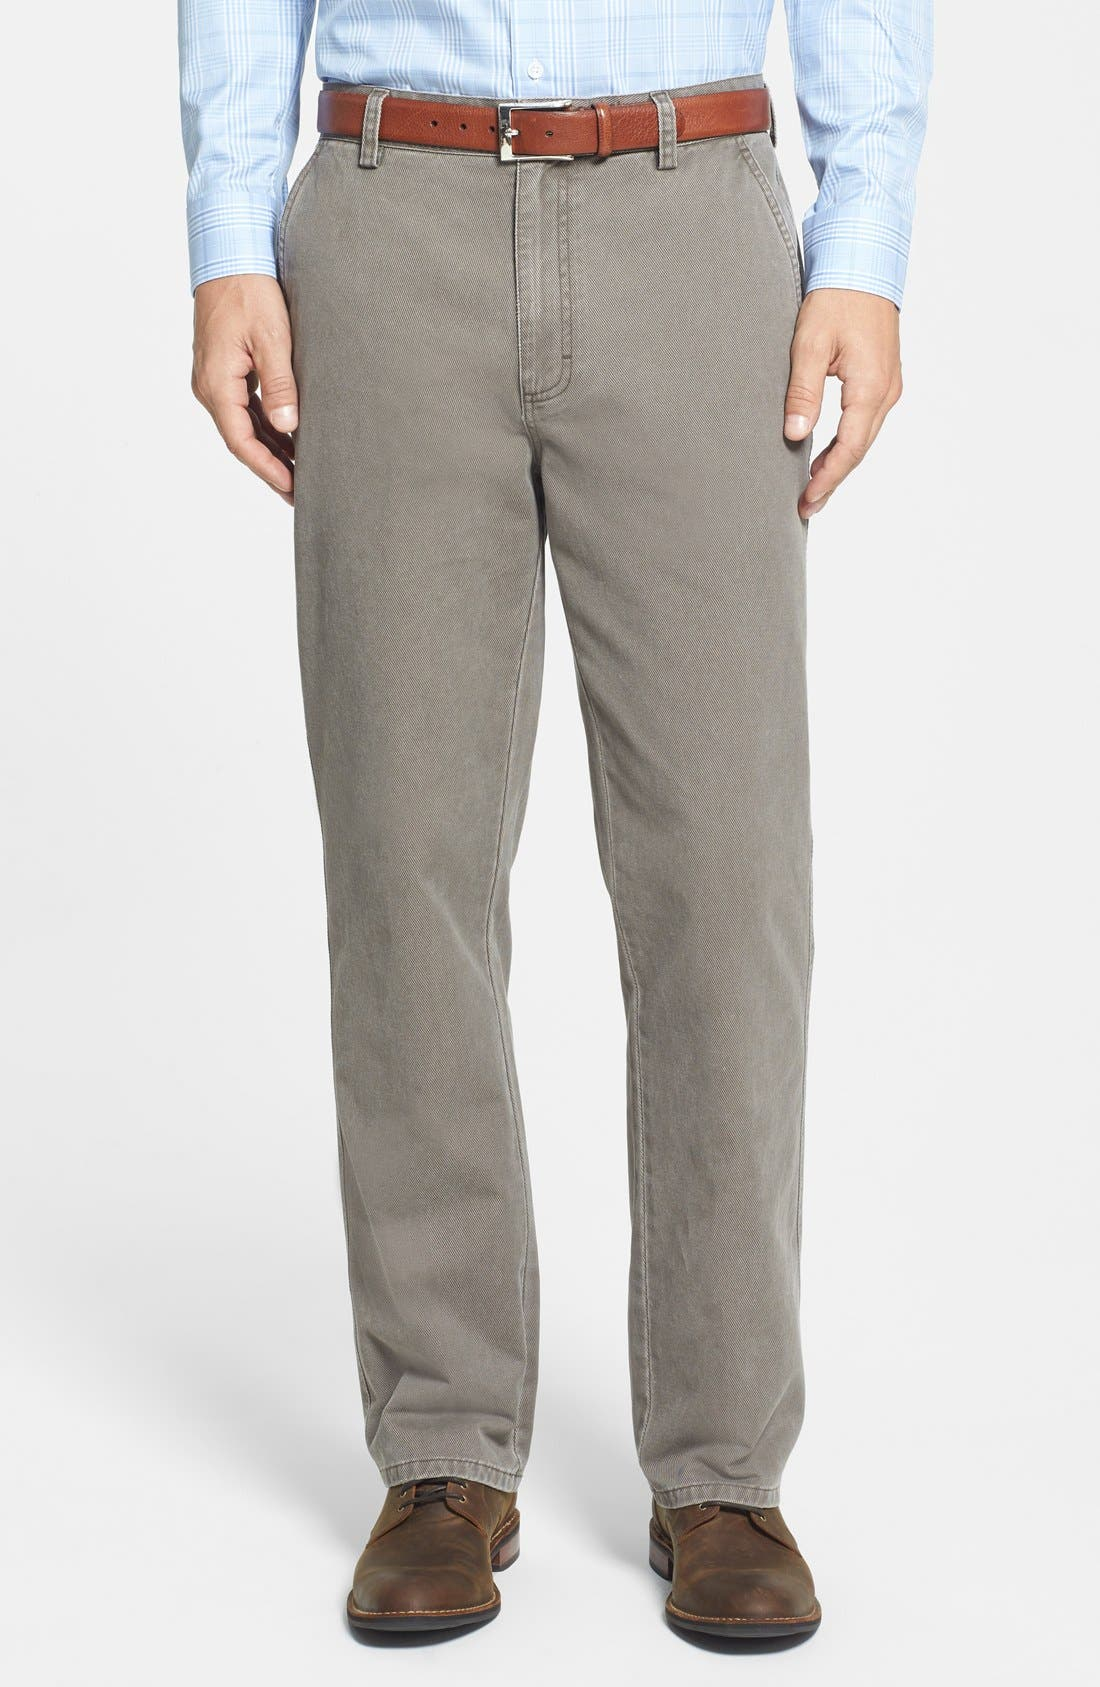 CUTTER & BUCK 'Curtis' Flat Front Five-Pocket Cotton